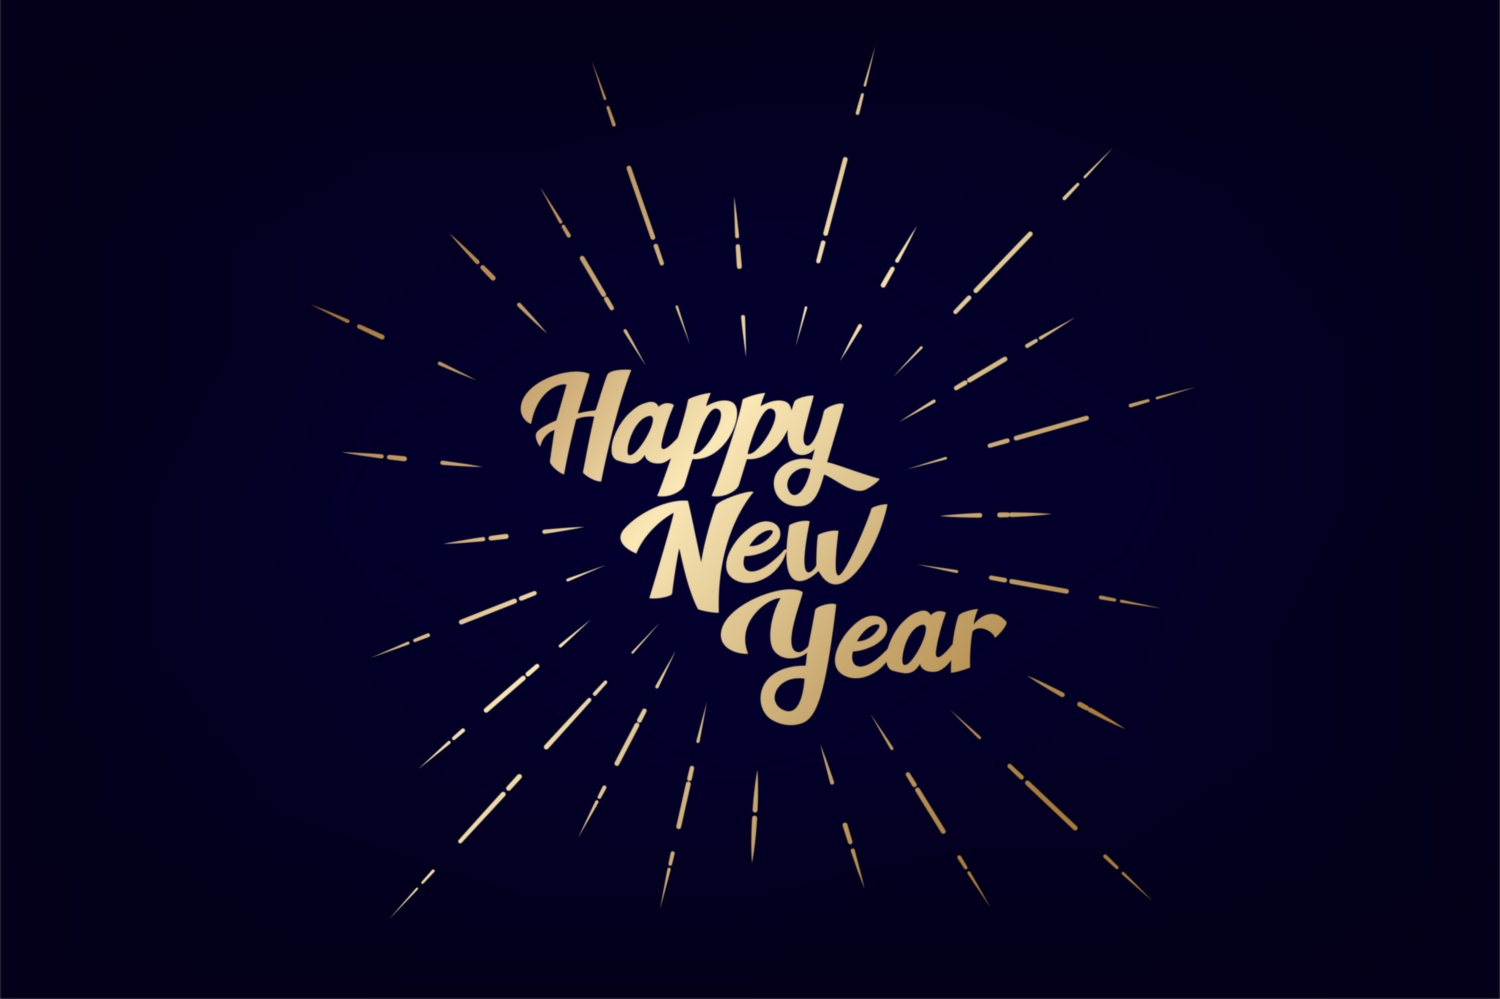 Download Free 2021 Happy New Year Vintage Lettering Graphic By Kapitosh for Cricut Explore, Silhouette and other cutting machines.